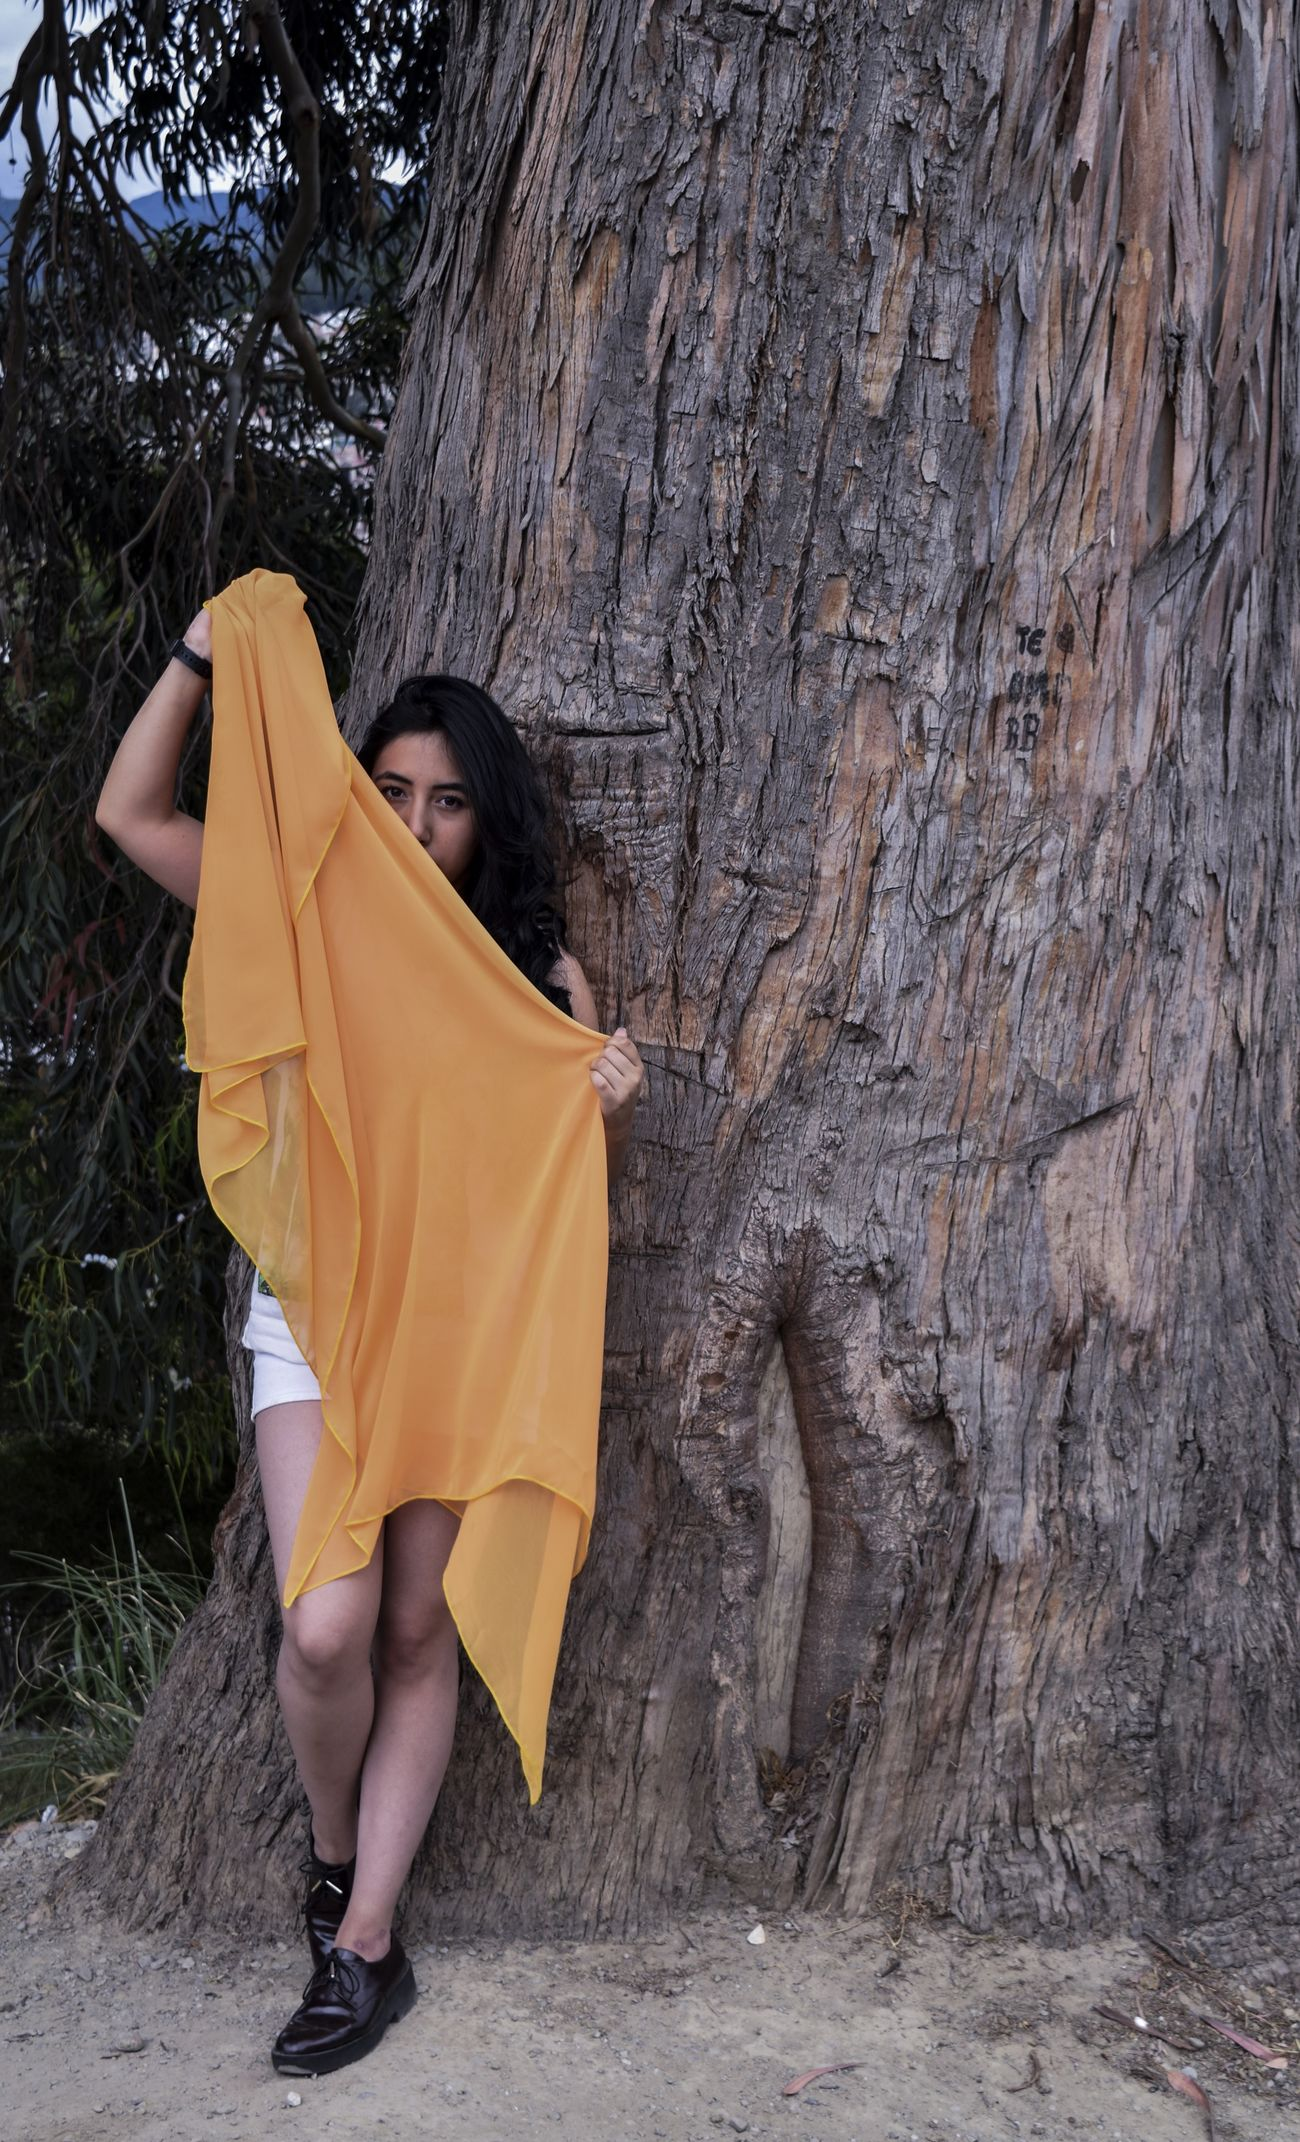 One Person Yellow Real People One Girl Only Adult Tree Day People Photo Of The Day Yellow Color Telas Inspired Tree Enjoying Life Raíces Trip Photo Girl Portrait Model